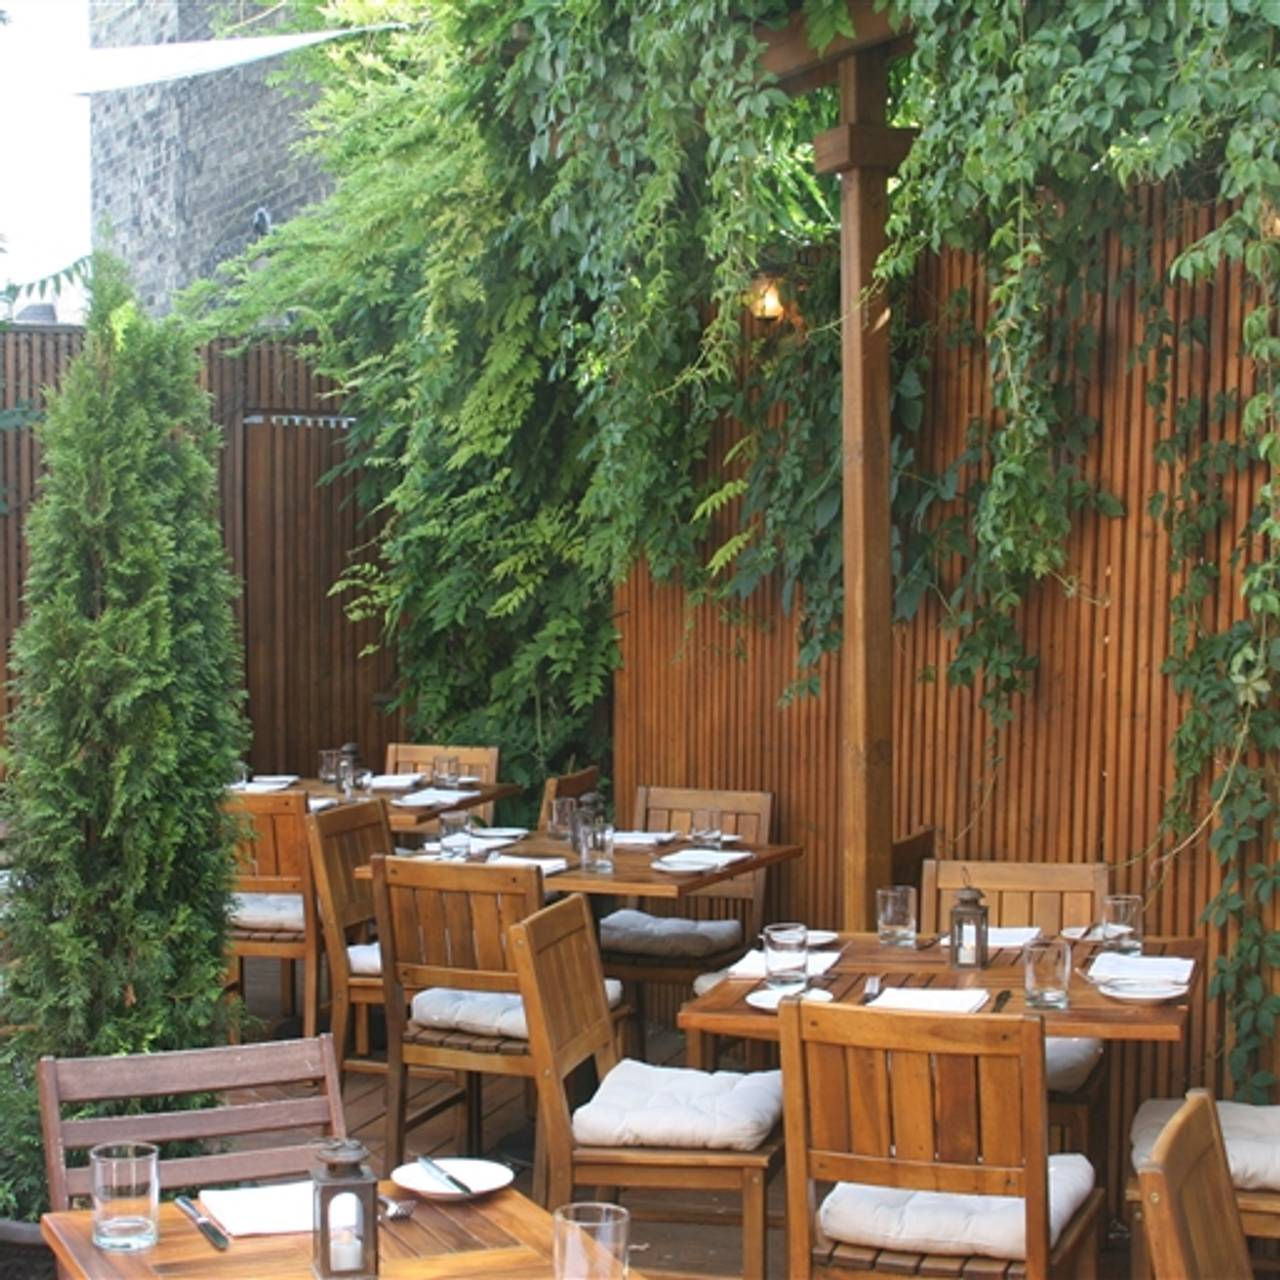 Permanently Closed - Sidecar - Toronto, ON | OpenTable